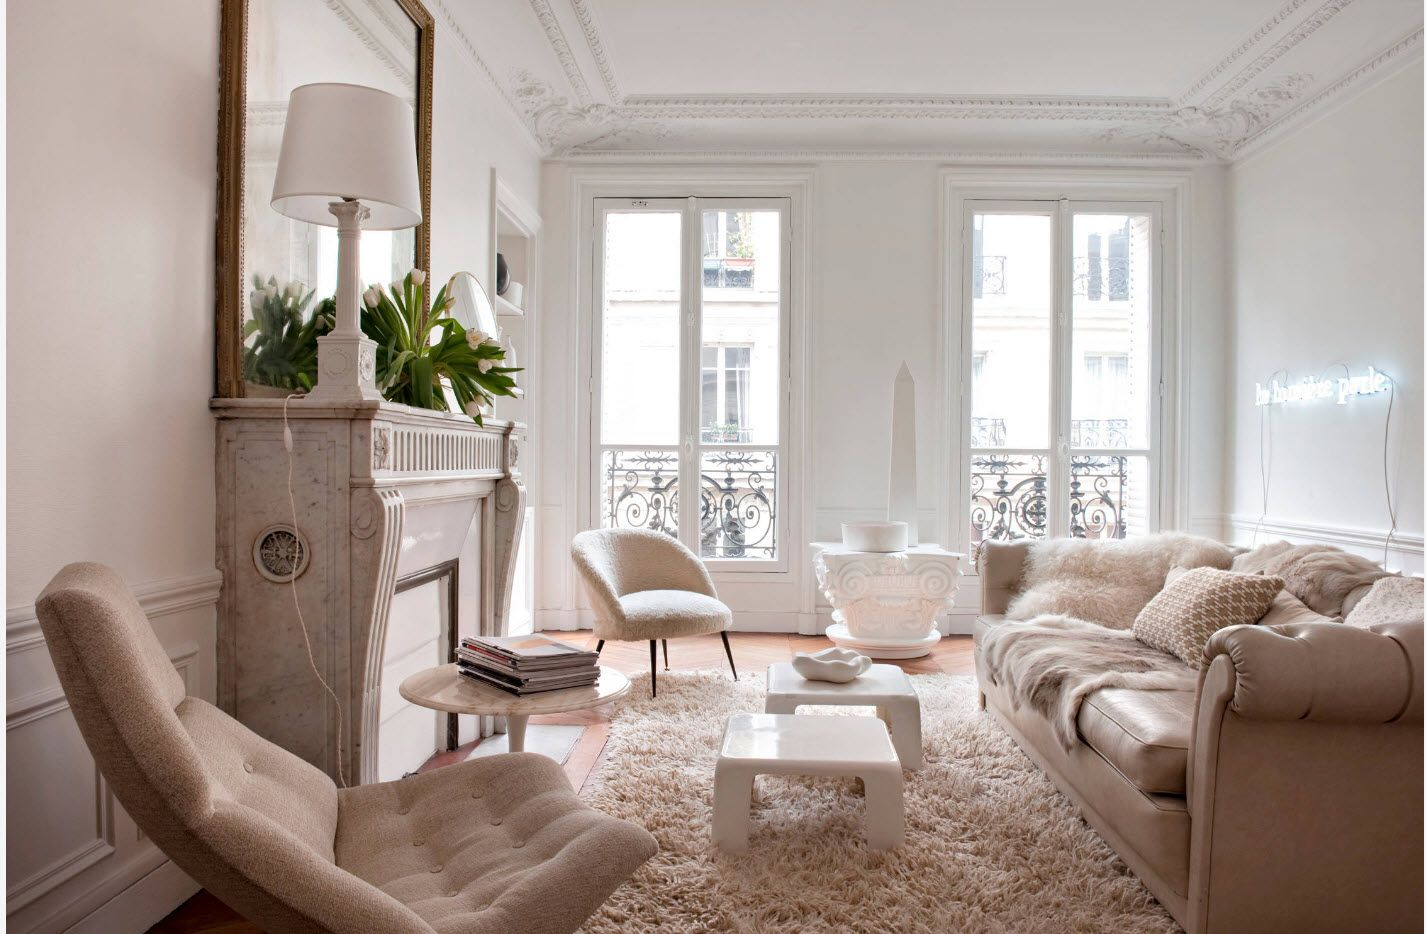 Nice classic design of the apartment with bright interior and French blacony